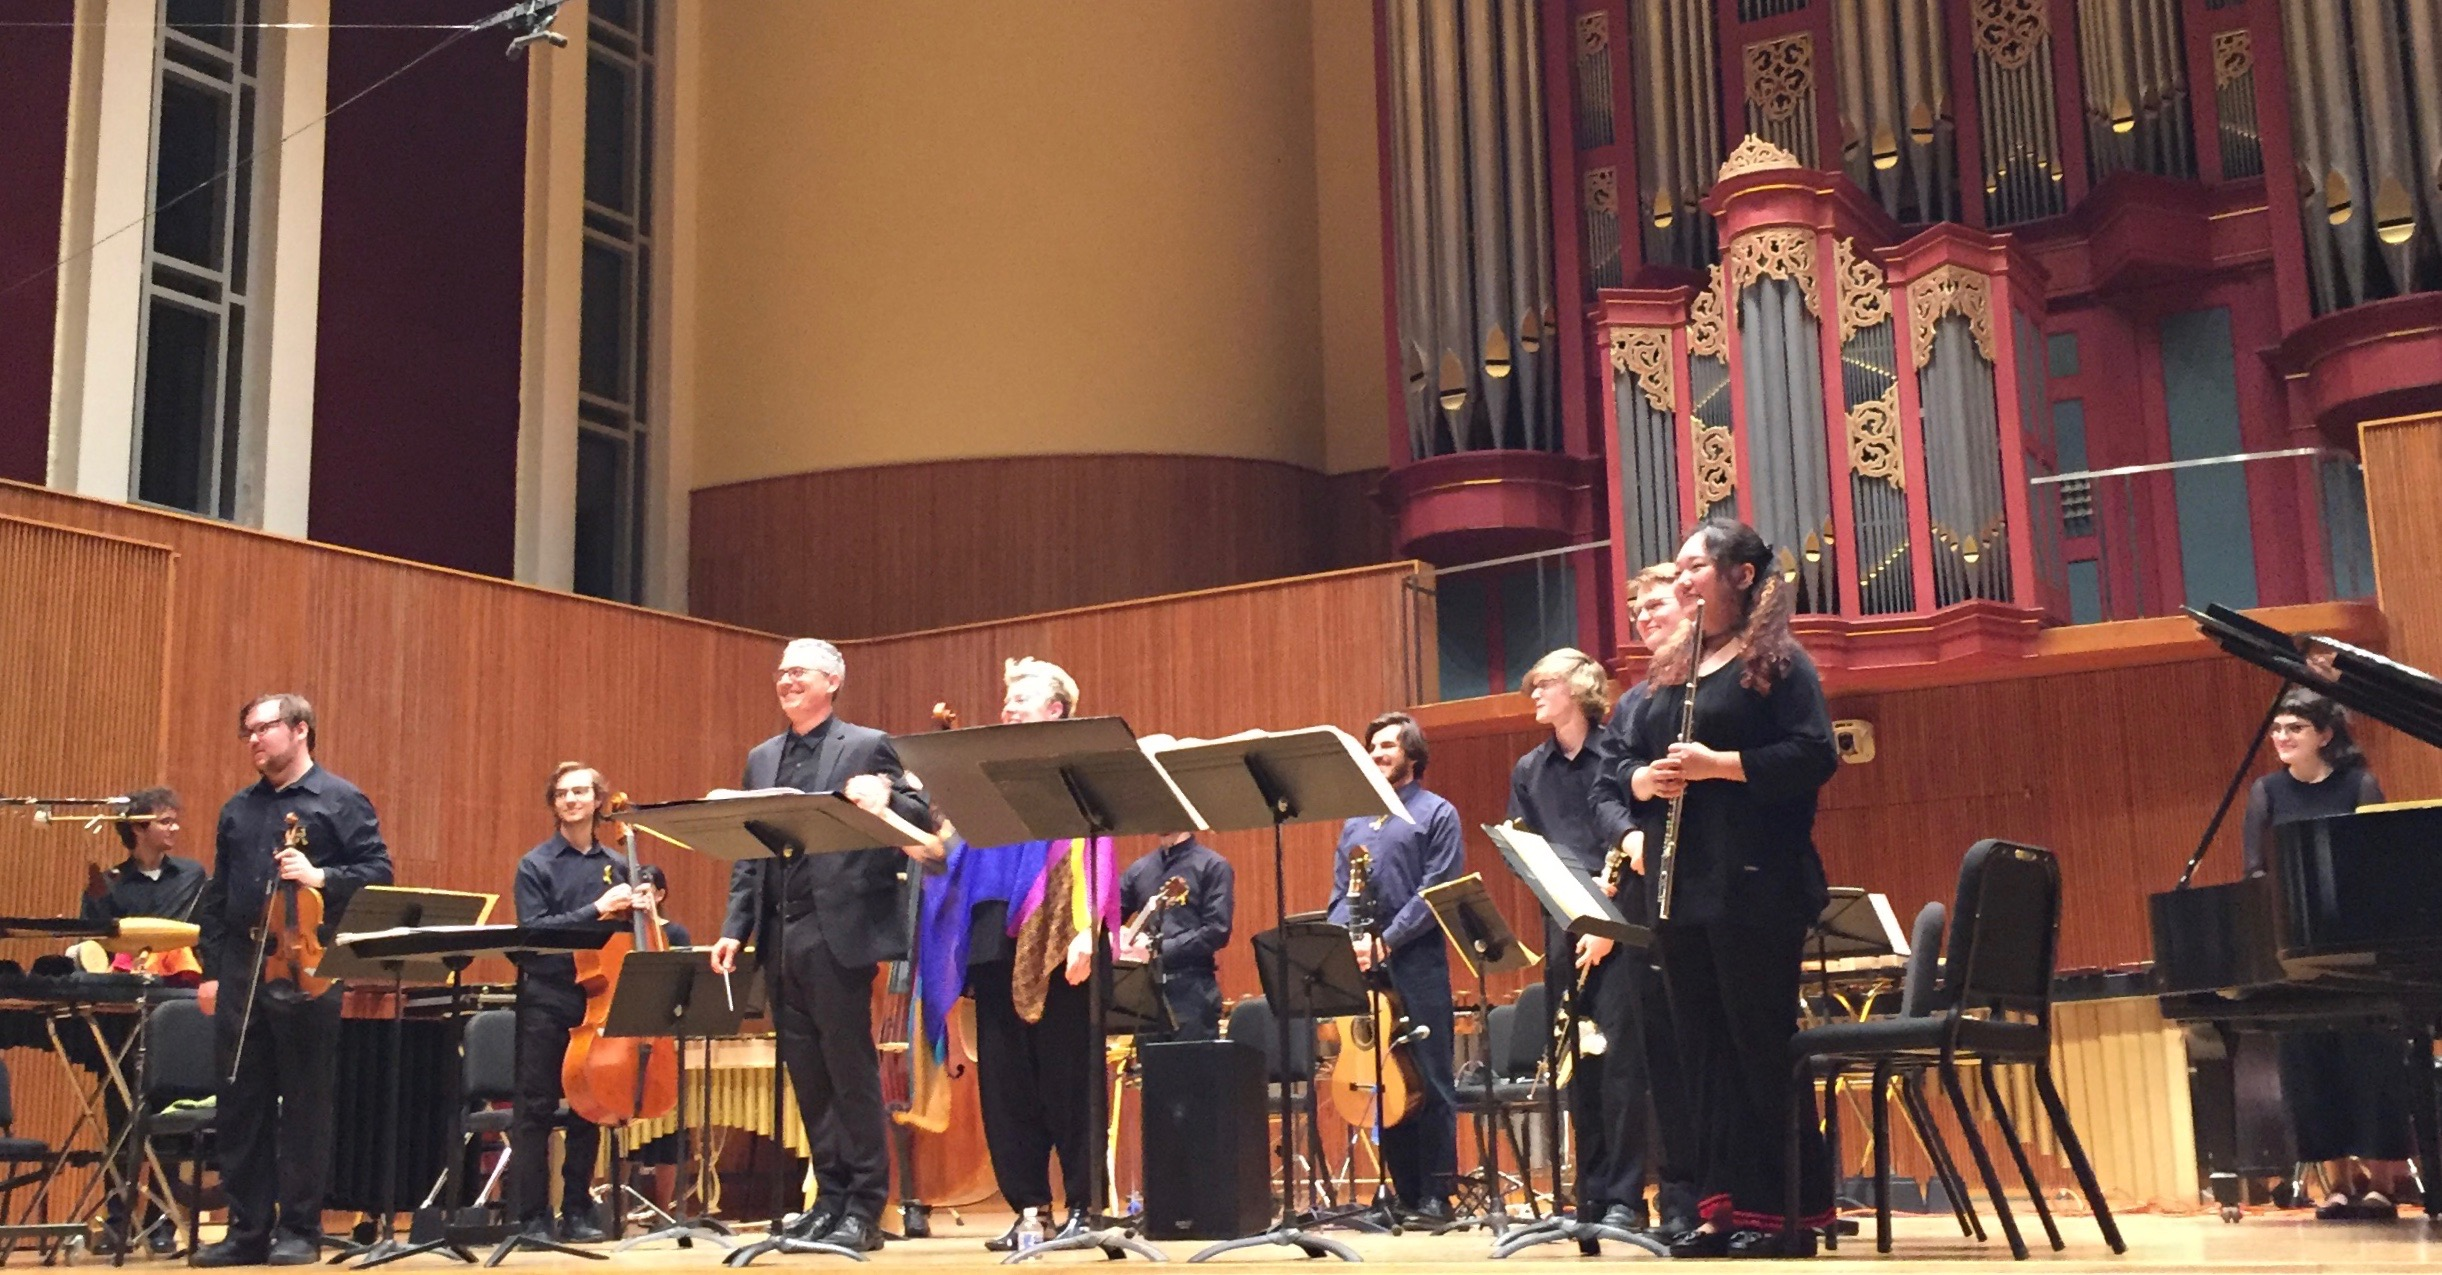 And the bows. My camera missed the composer, Ricardo Zohn-Muldoon, who came onstage for a bow as well.